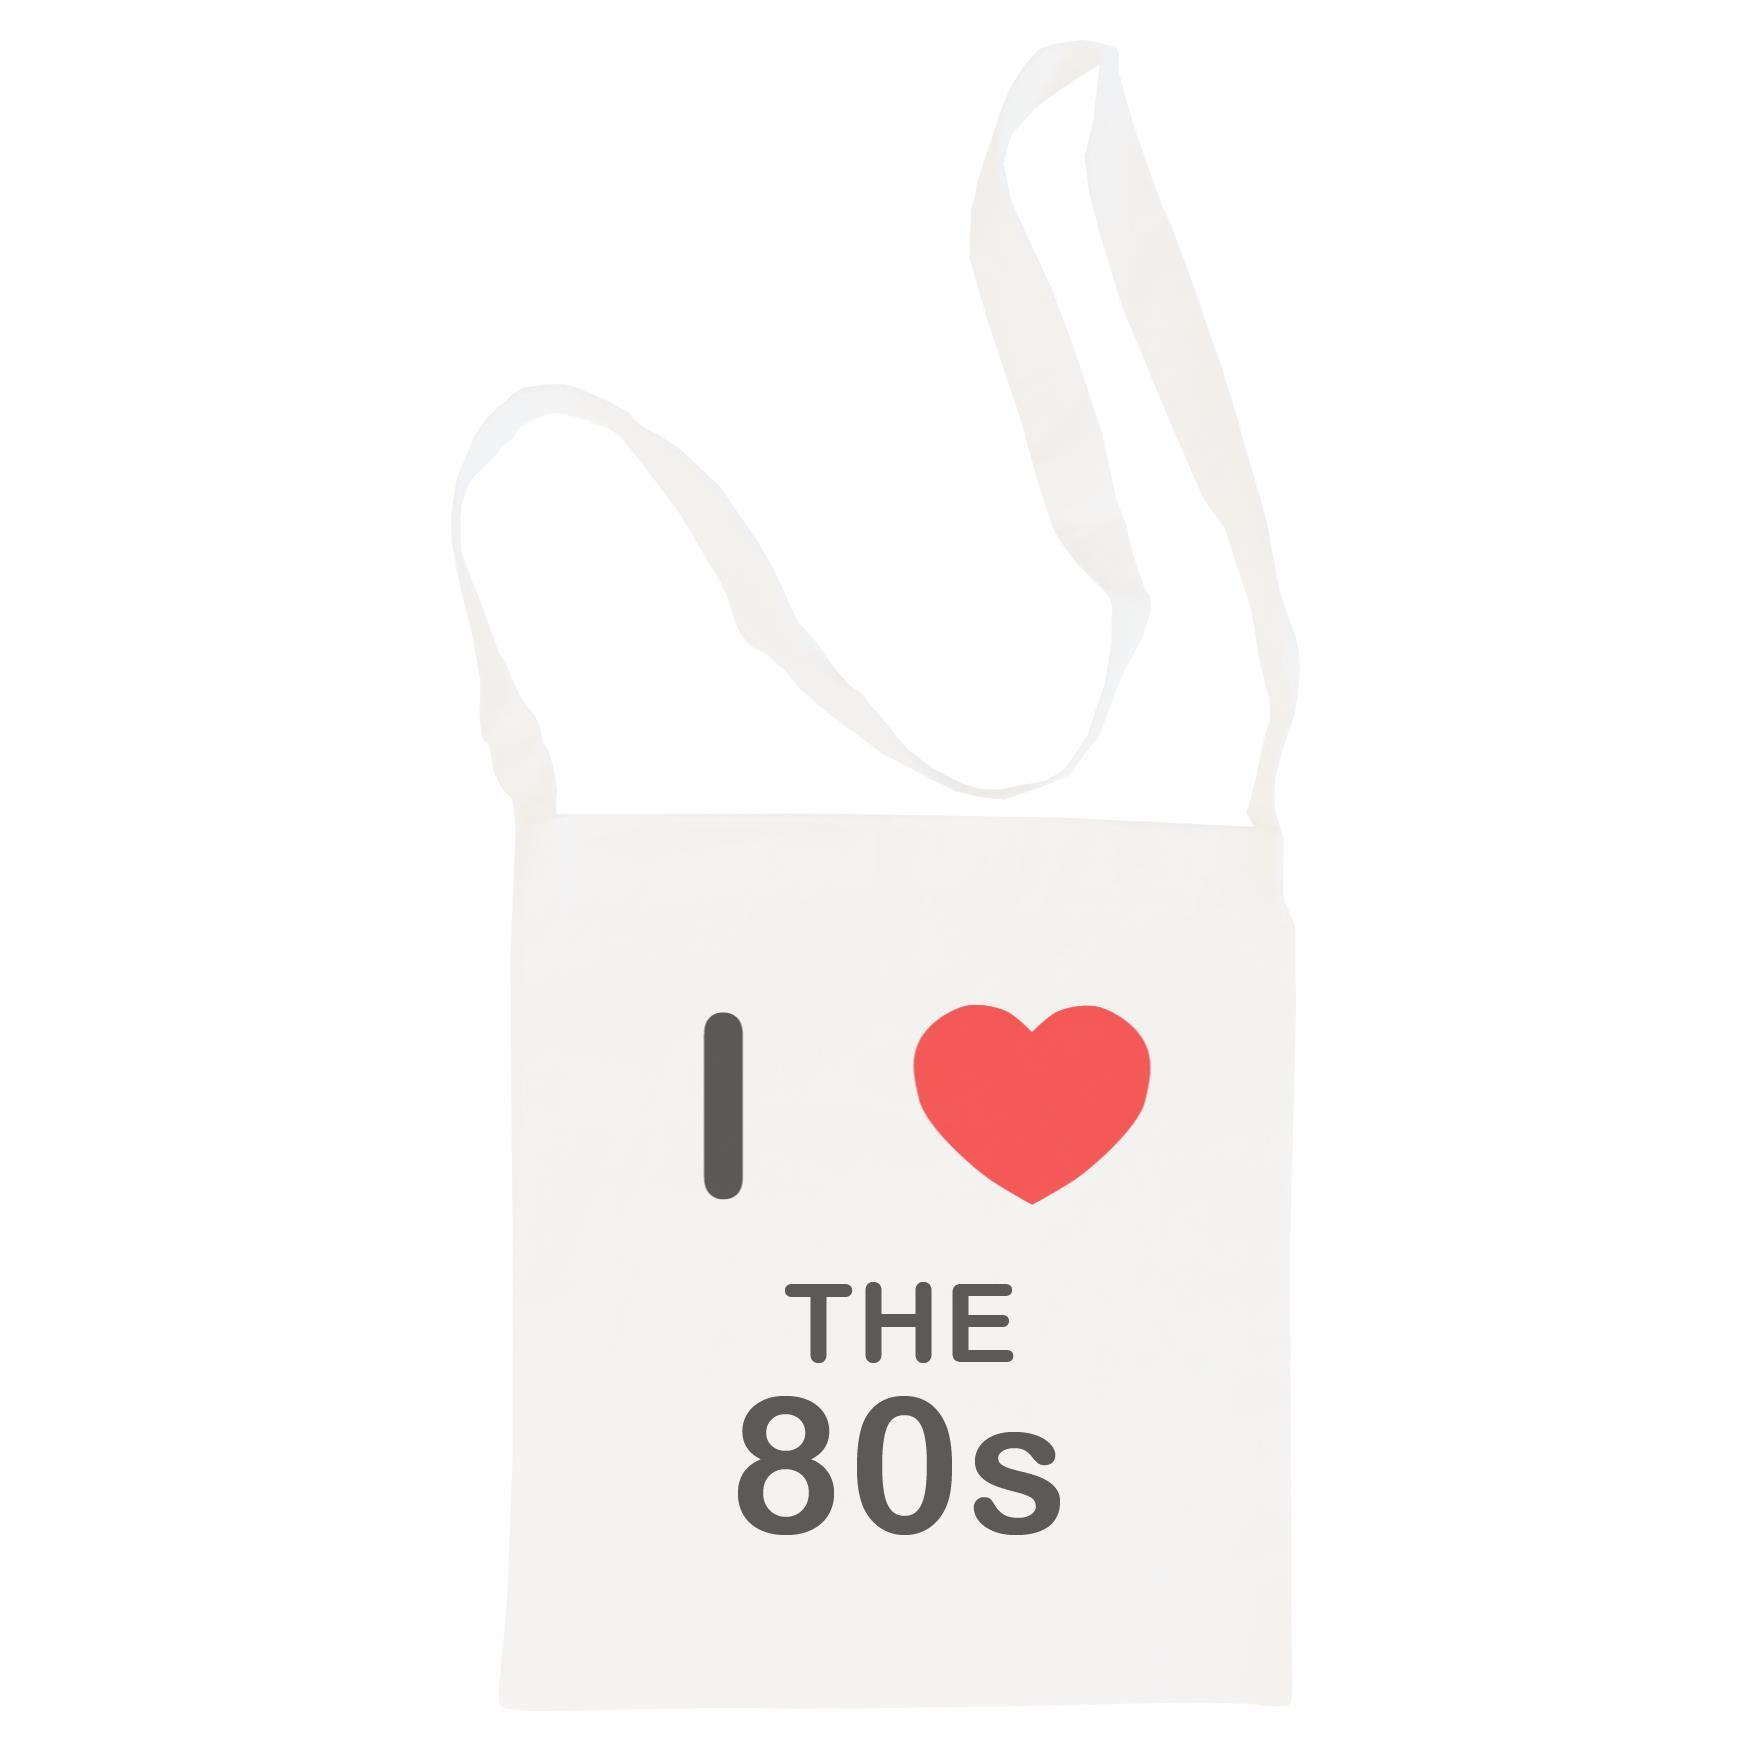 I Love The 80's - Cotton Bag | Size choice Tote, Shopper or Sling